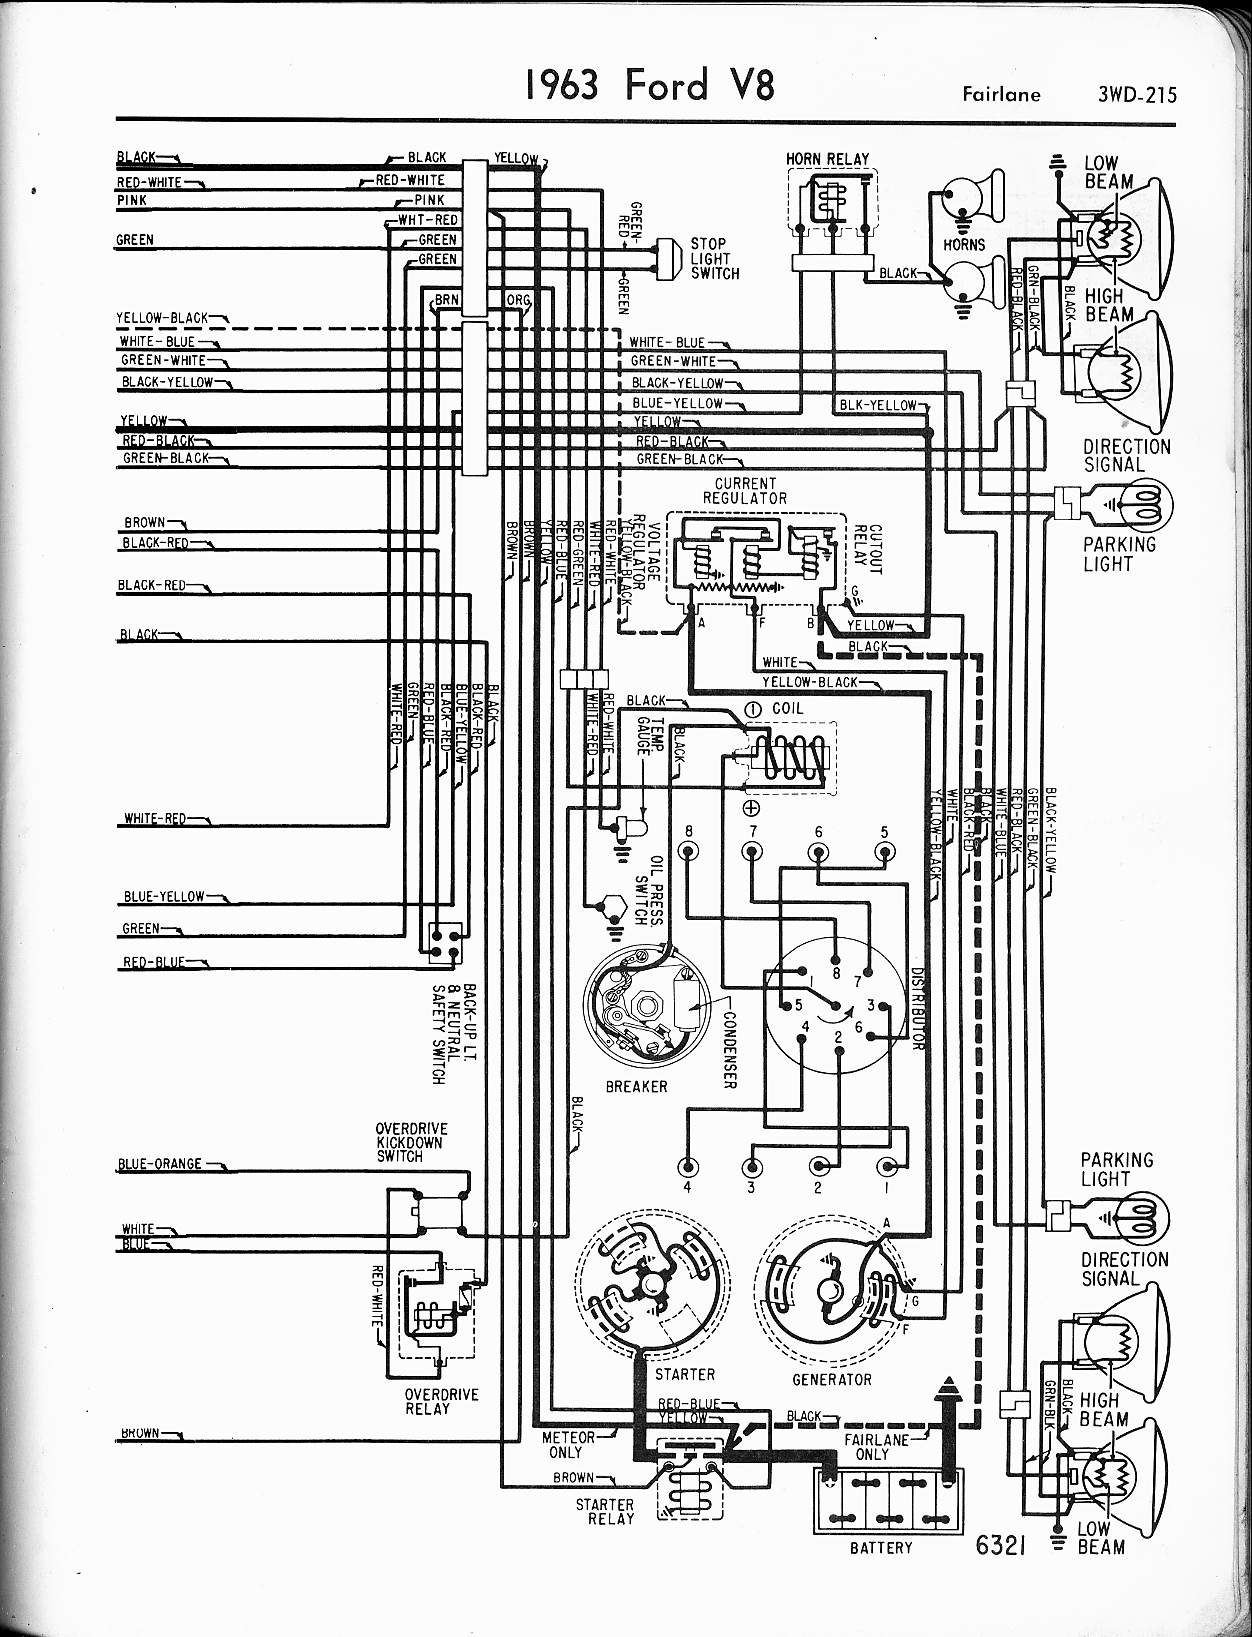 MWire5765 215 57 65 ford wiring diagrams 63 falcon wiring diagram at reclaimingppi.co